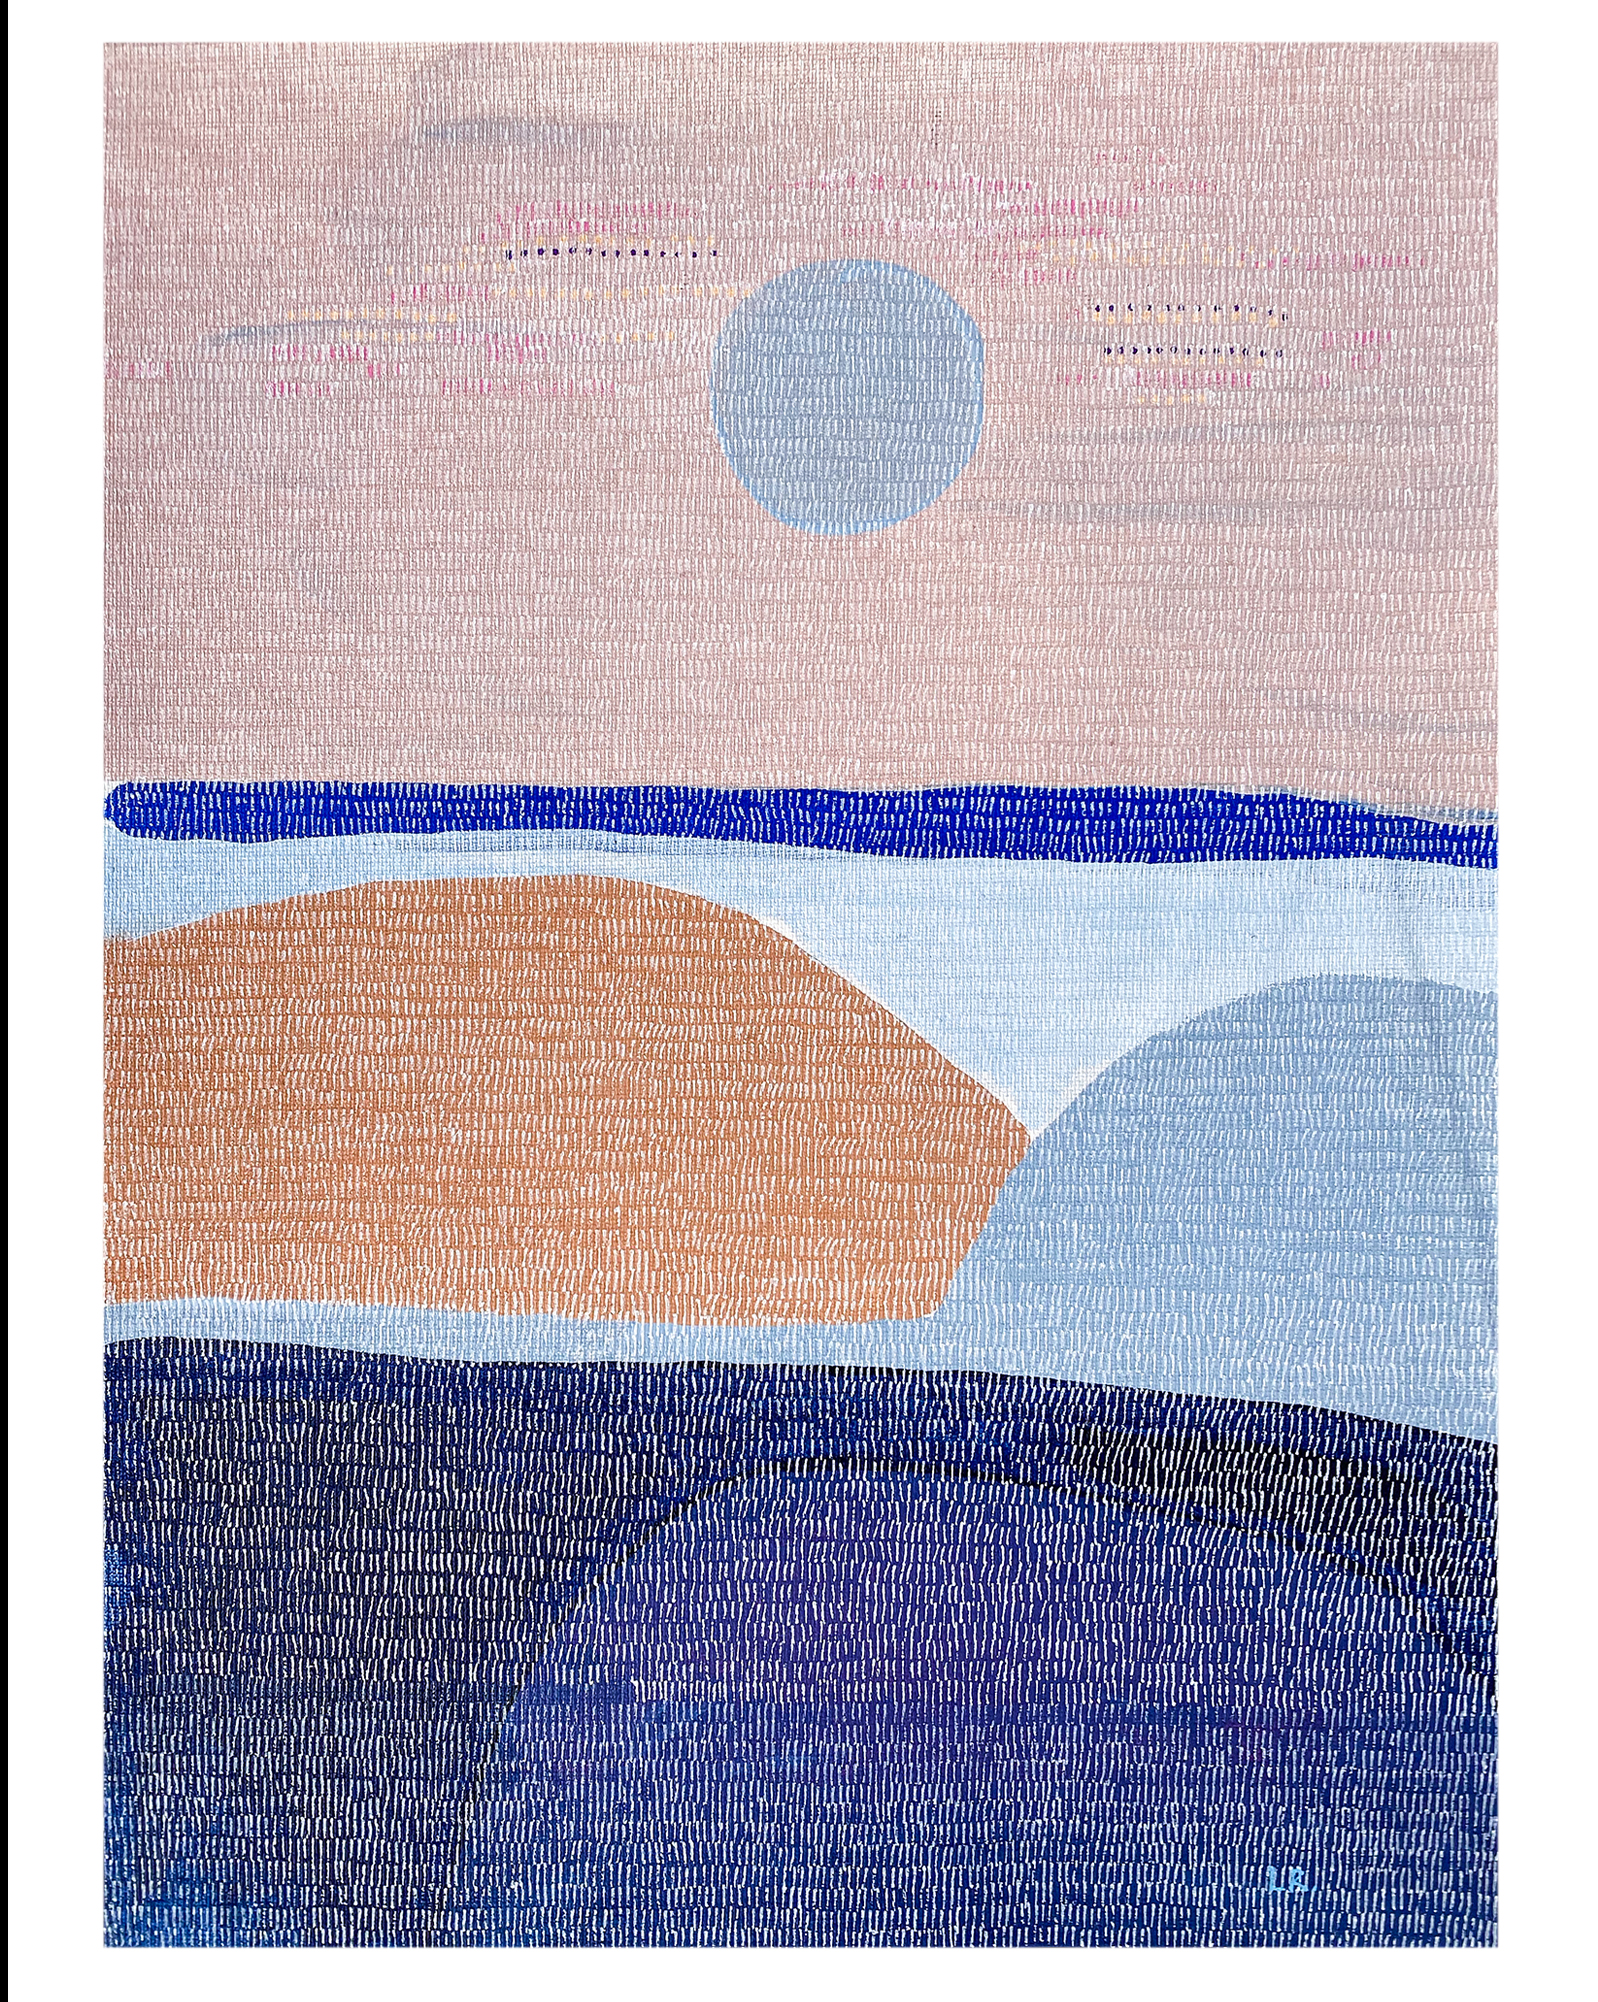 Marin Headlands VII by Ruth Le Roux ,